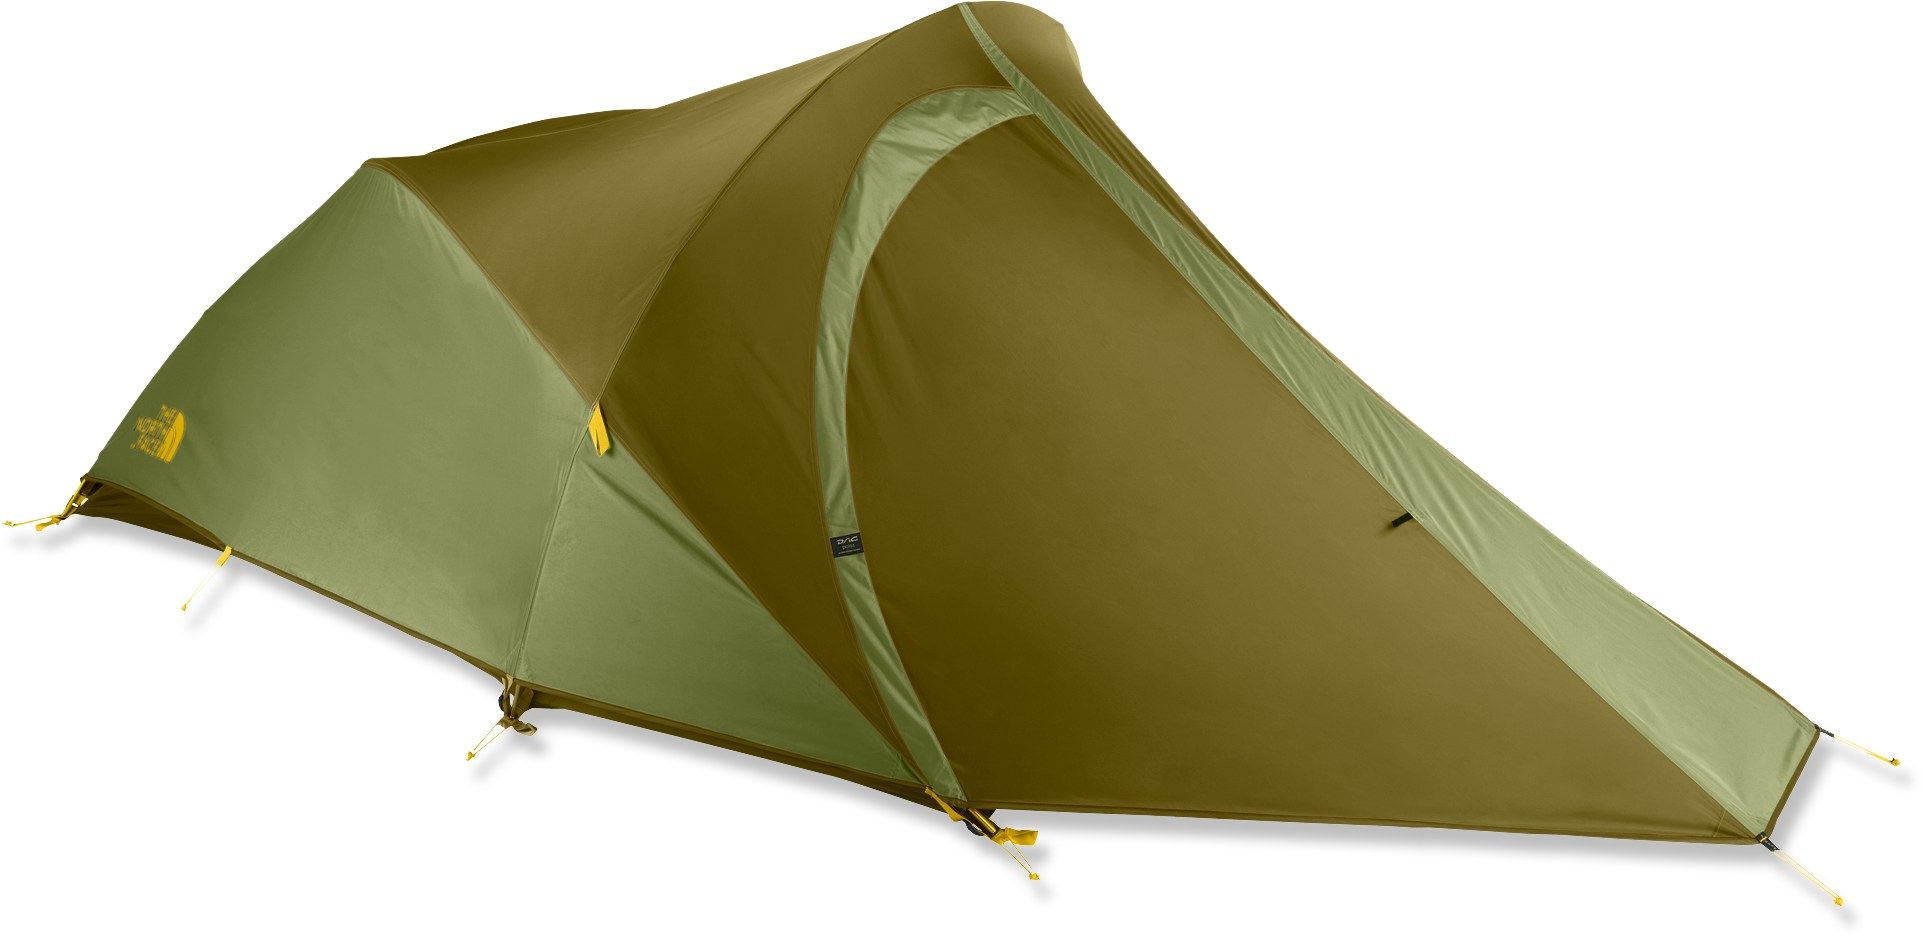 The North Face Tadpole 23 Tent - Free Shipping at REI.com  sc 1 st  Pinterest & The North Face Tadpole 23 Tent - Free Shipping at REI.com | Tents ...